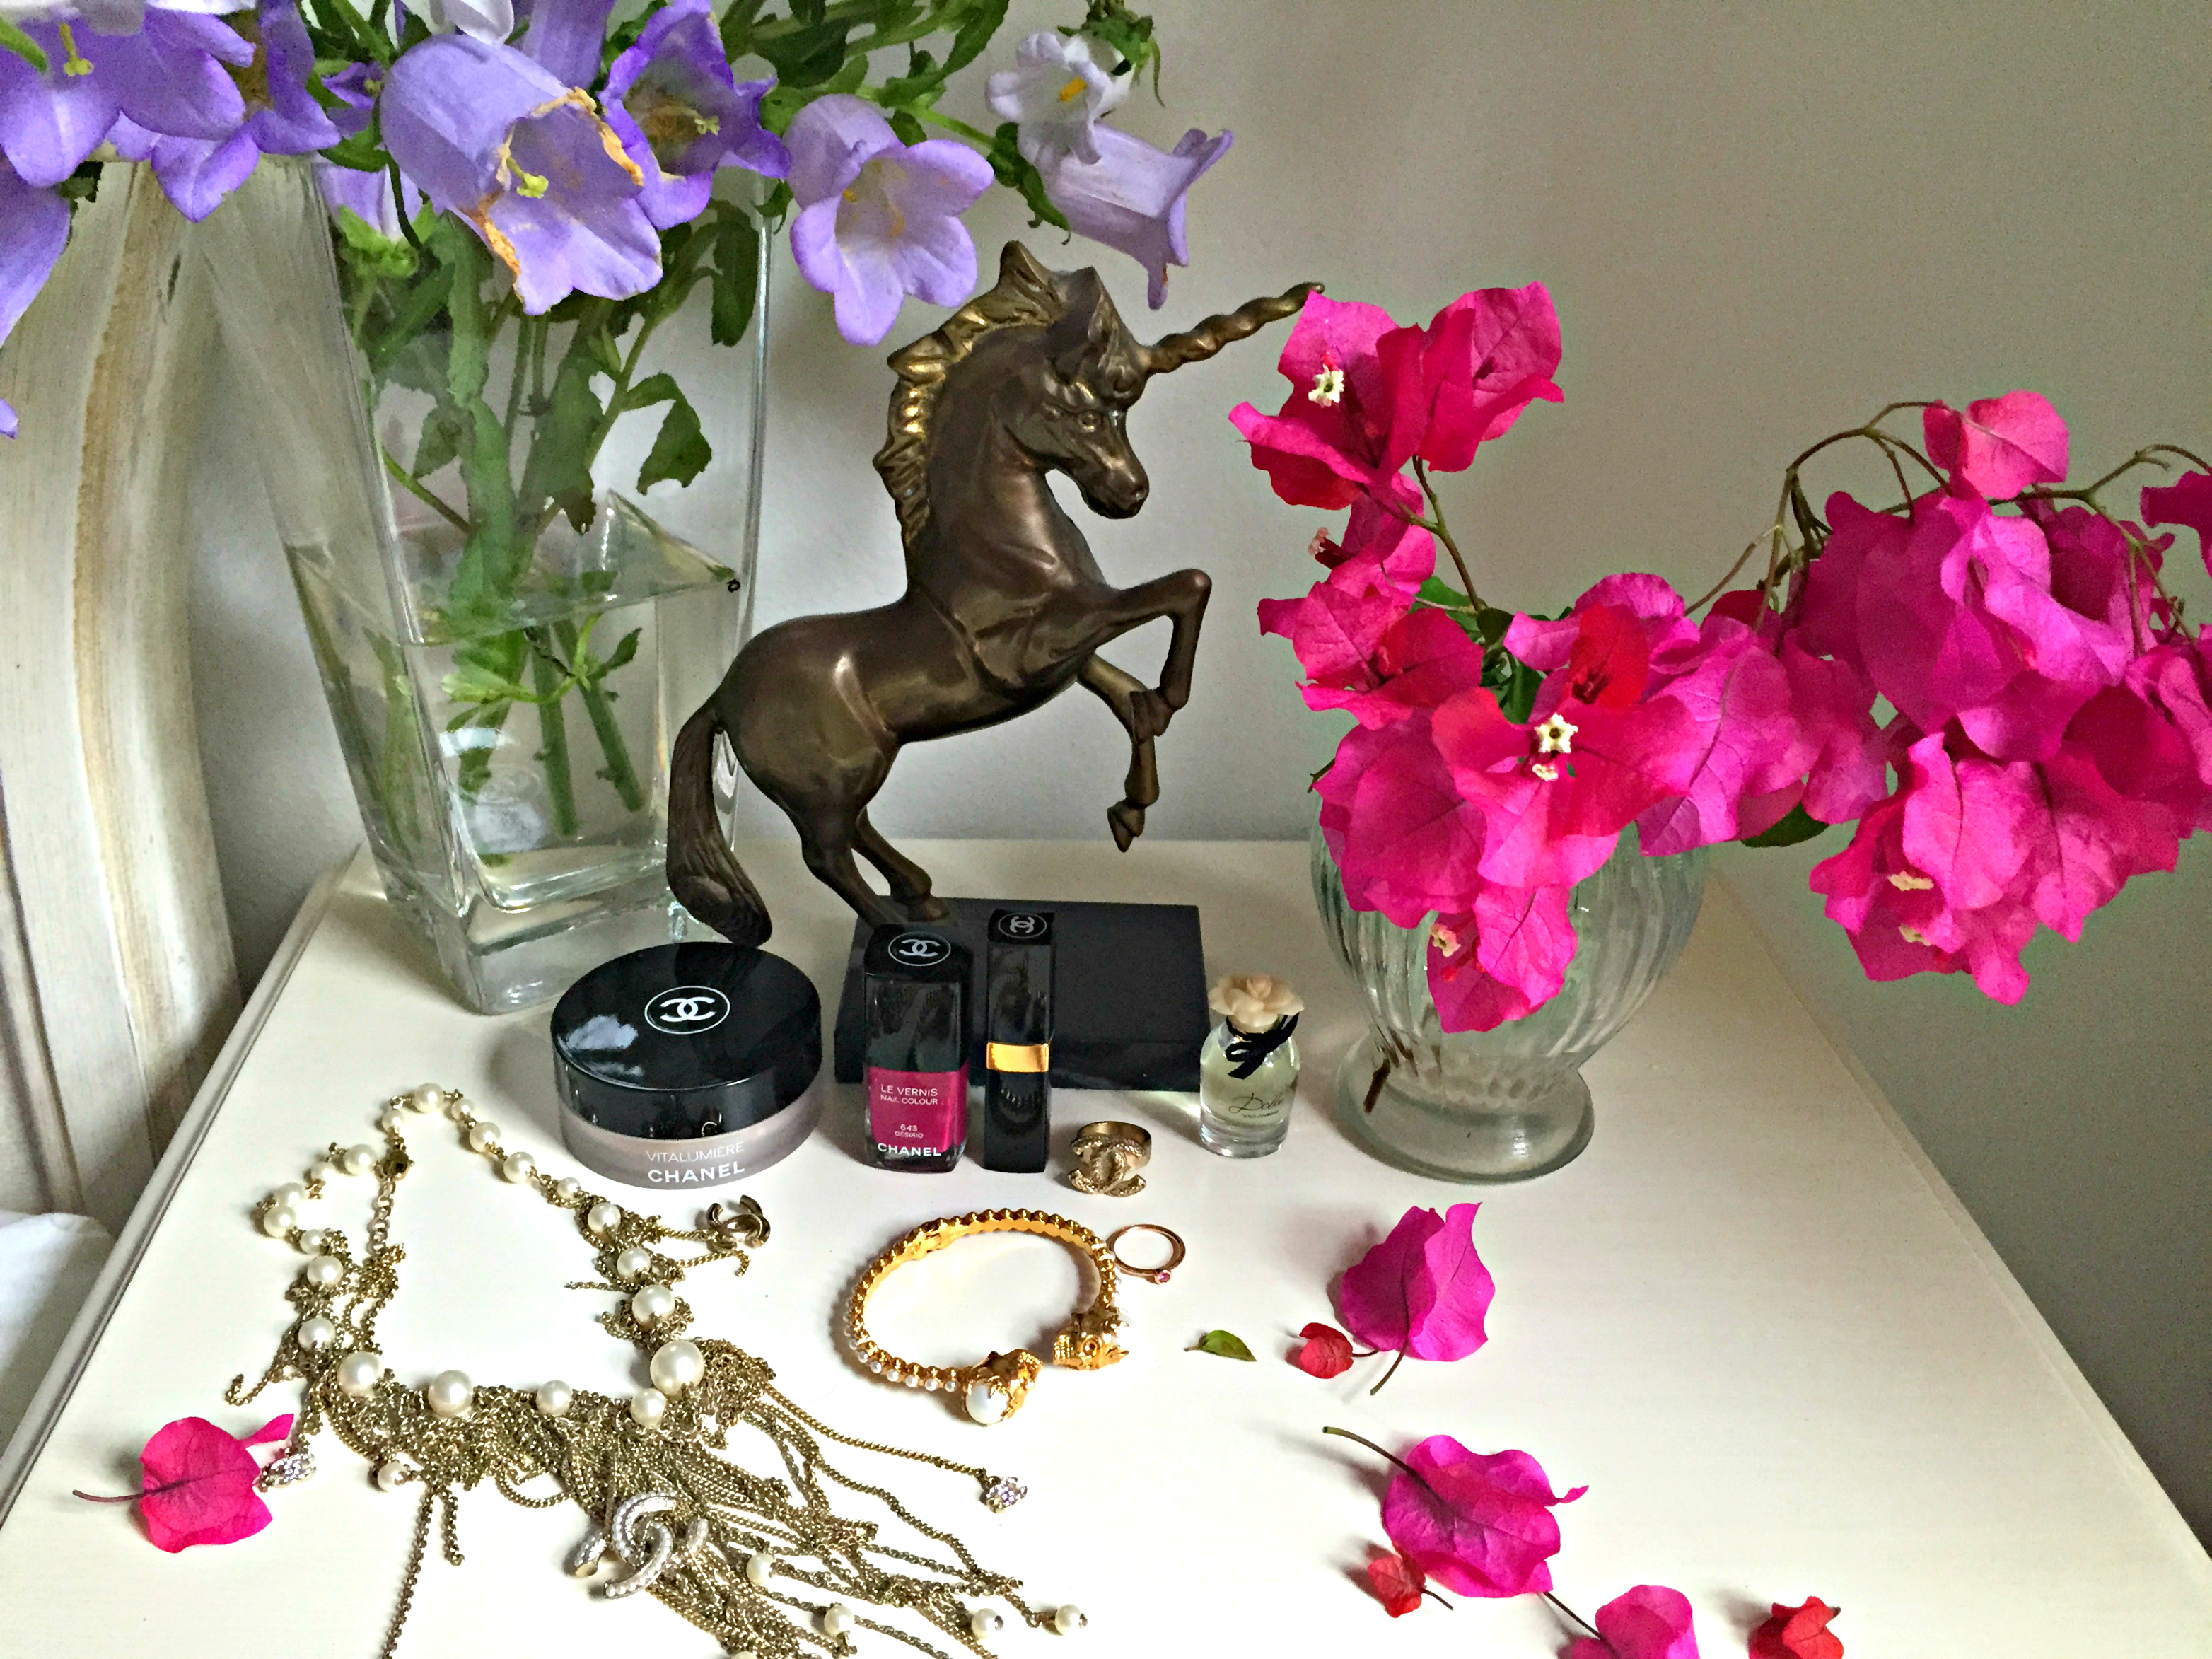 My beauty essentials: Chanel, Puretopia, Too Faced and more!